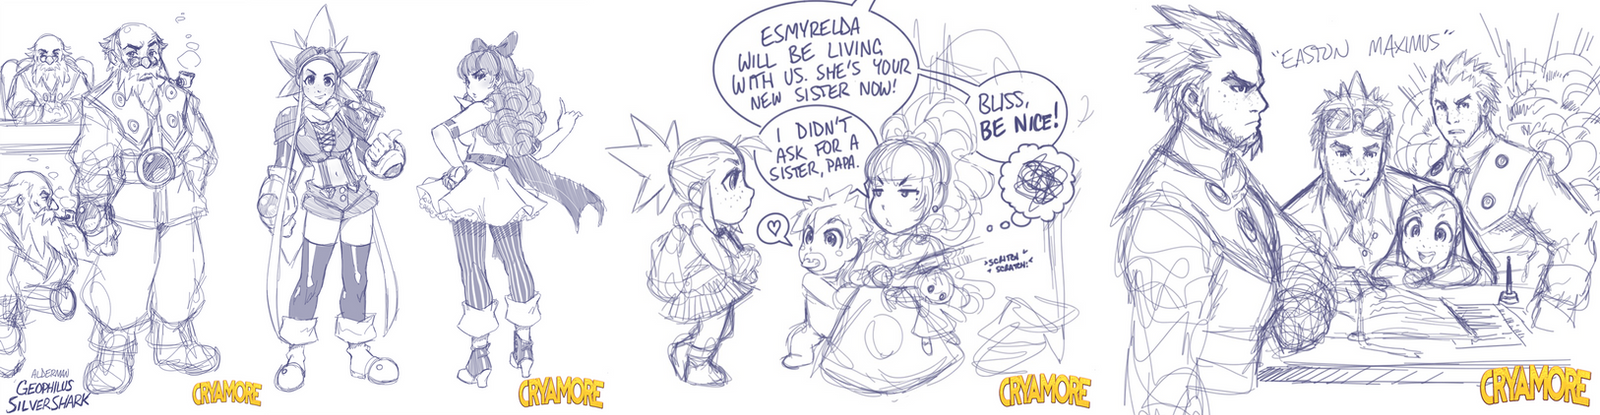 Cryamore Concept Sketchdump by Robaato